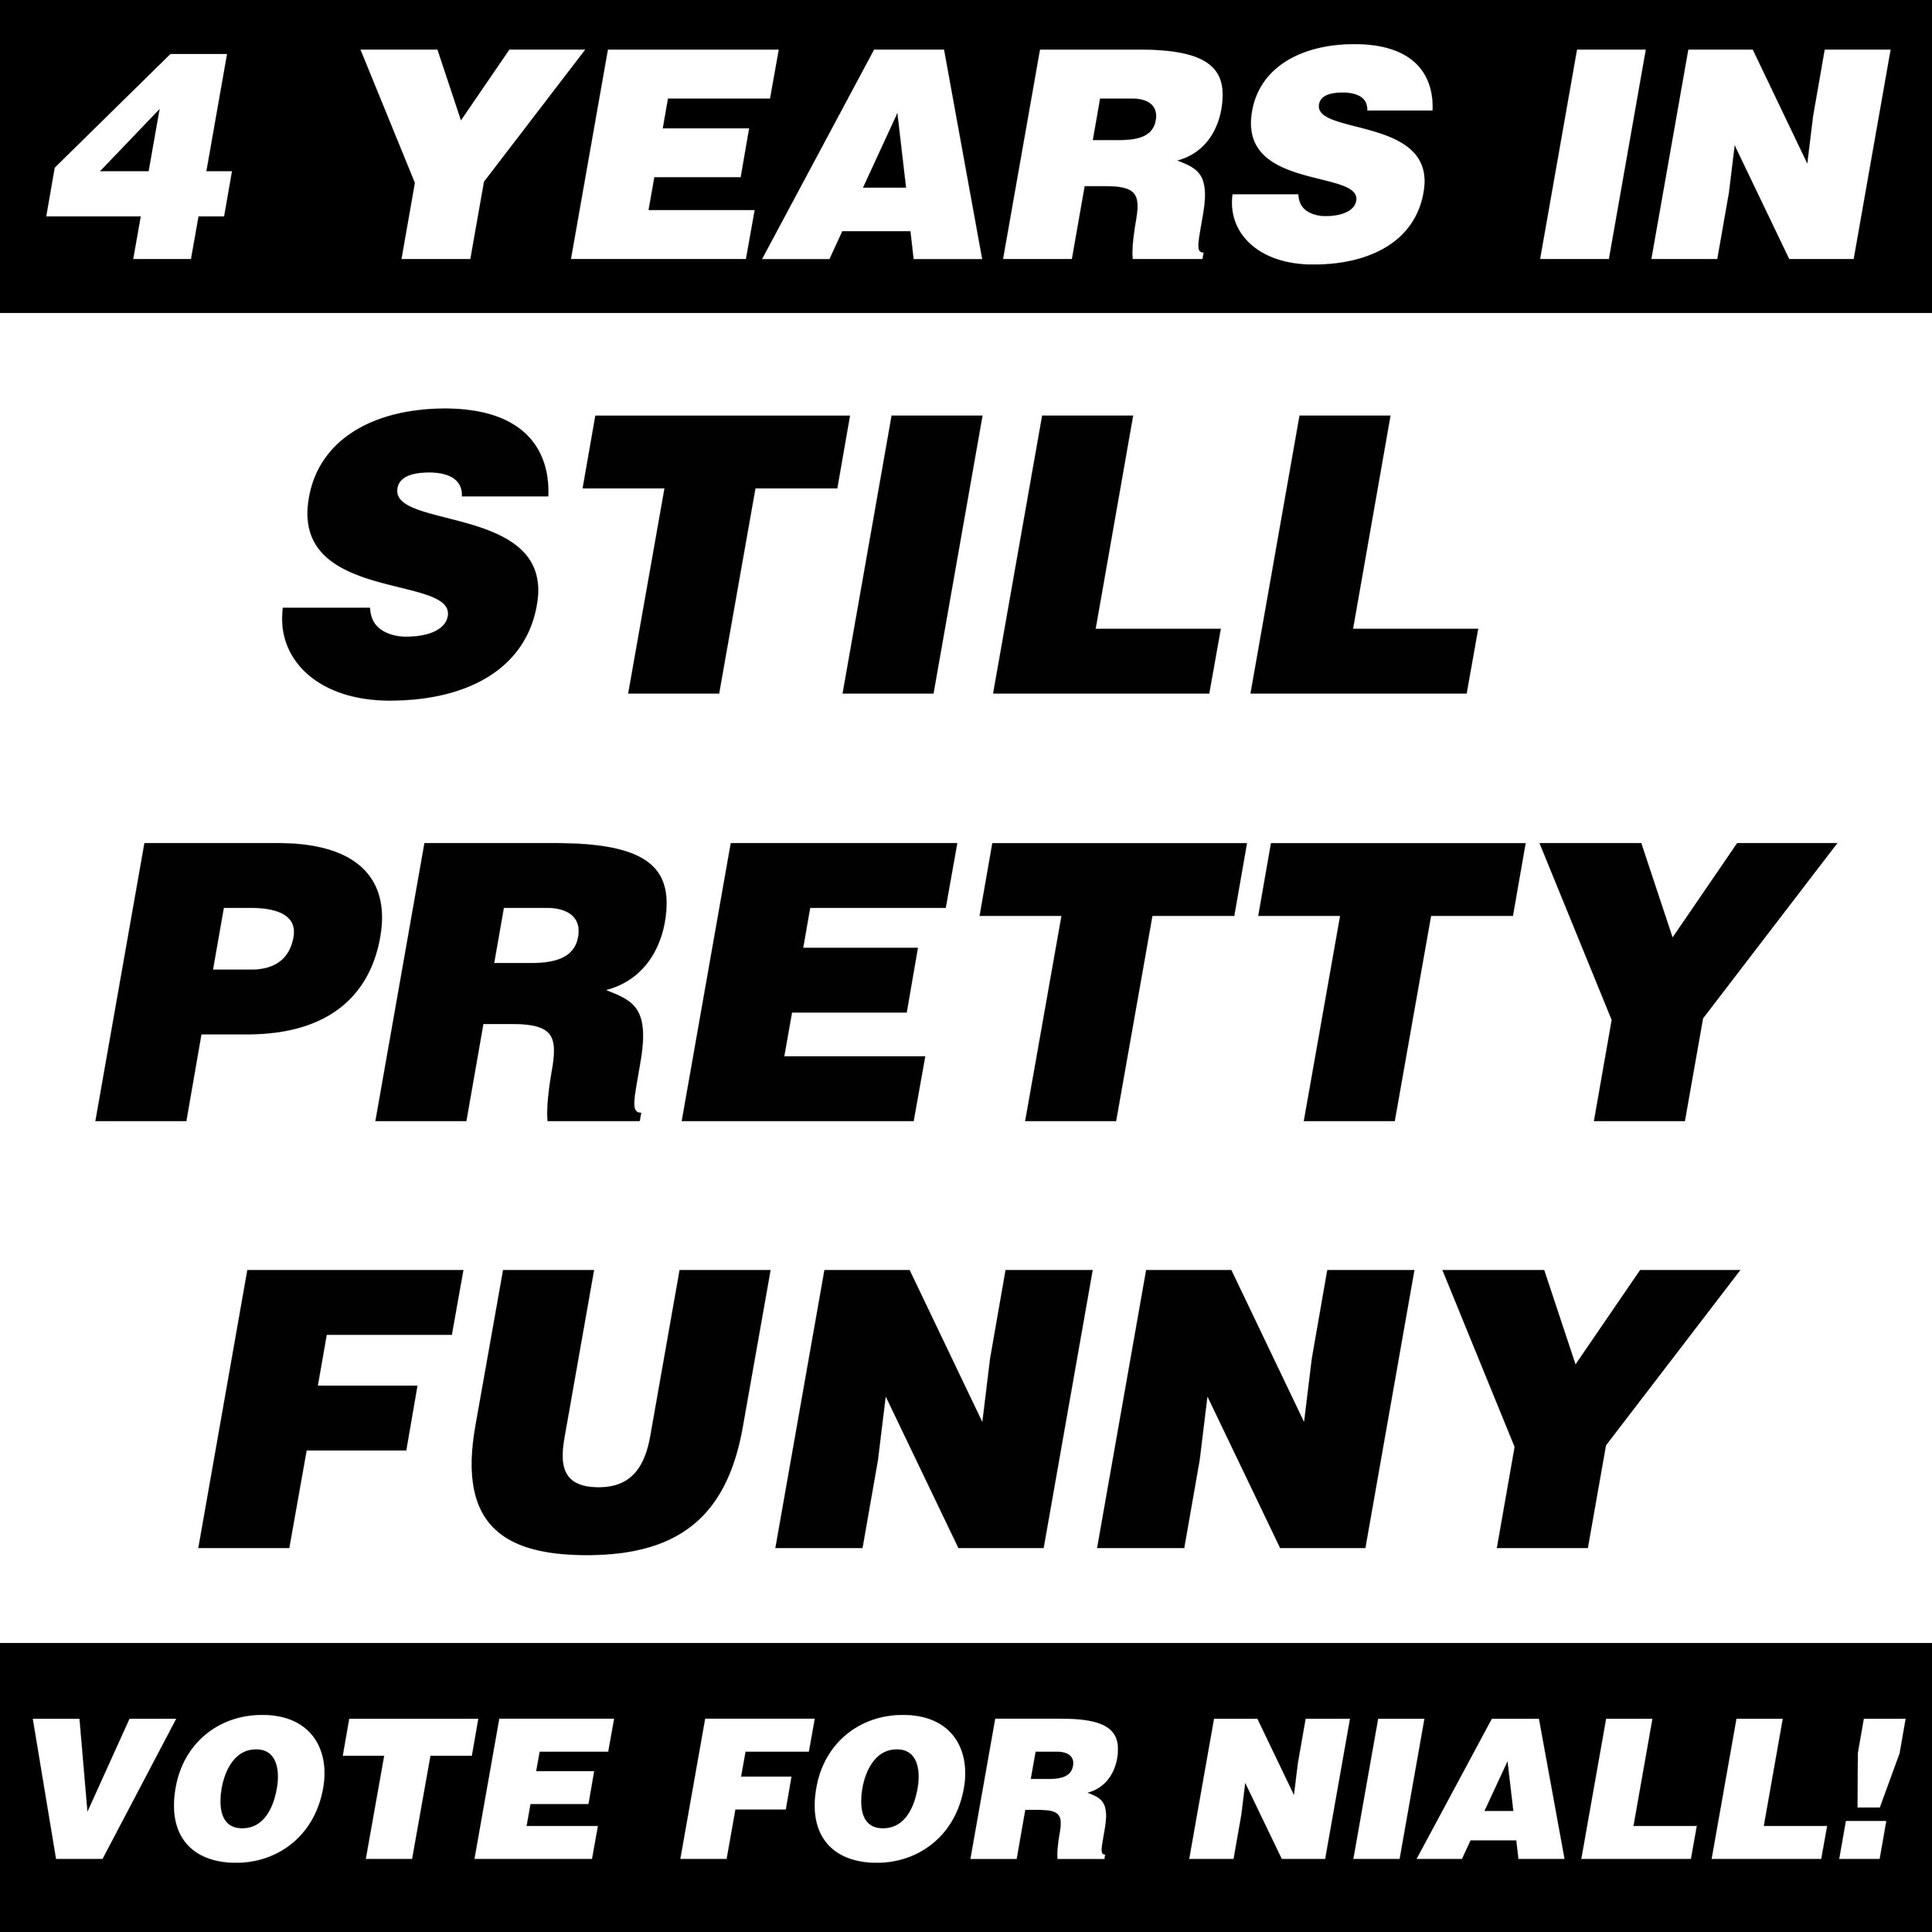 4 Years In Still Pretty Funny Vote for Niall